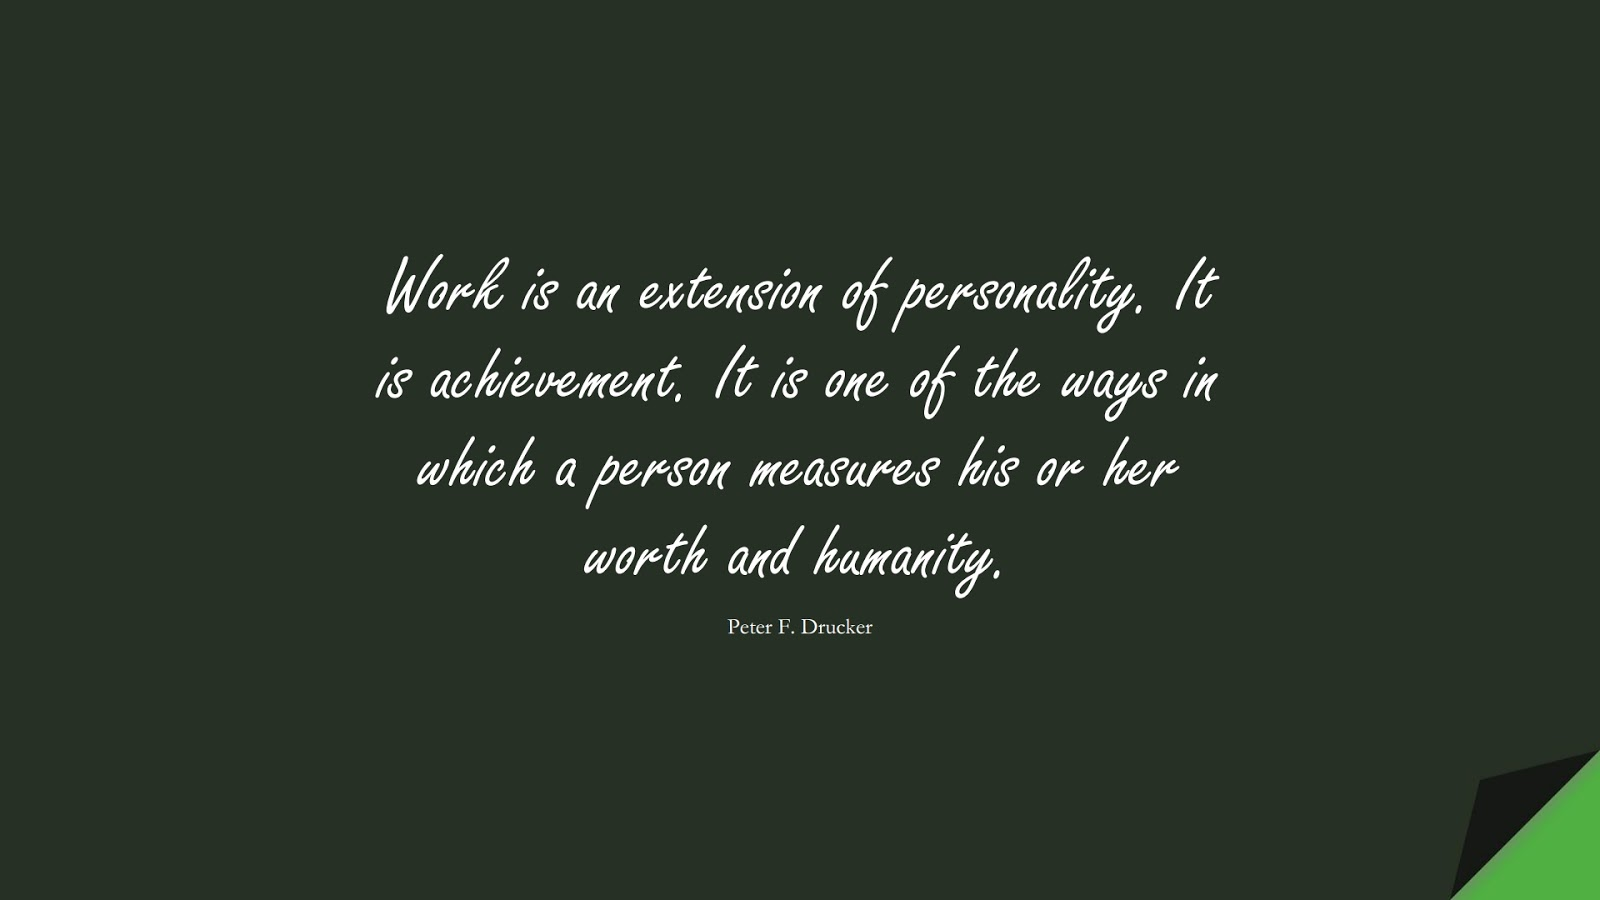 Work is an extension of personality. It is achievement. It is one of the ways in which a person measures his or her worth and humanity. (Peter F. Drucker);  #HardWorkQuotes